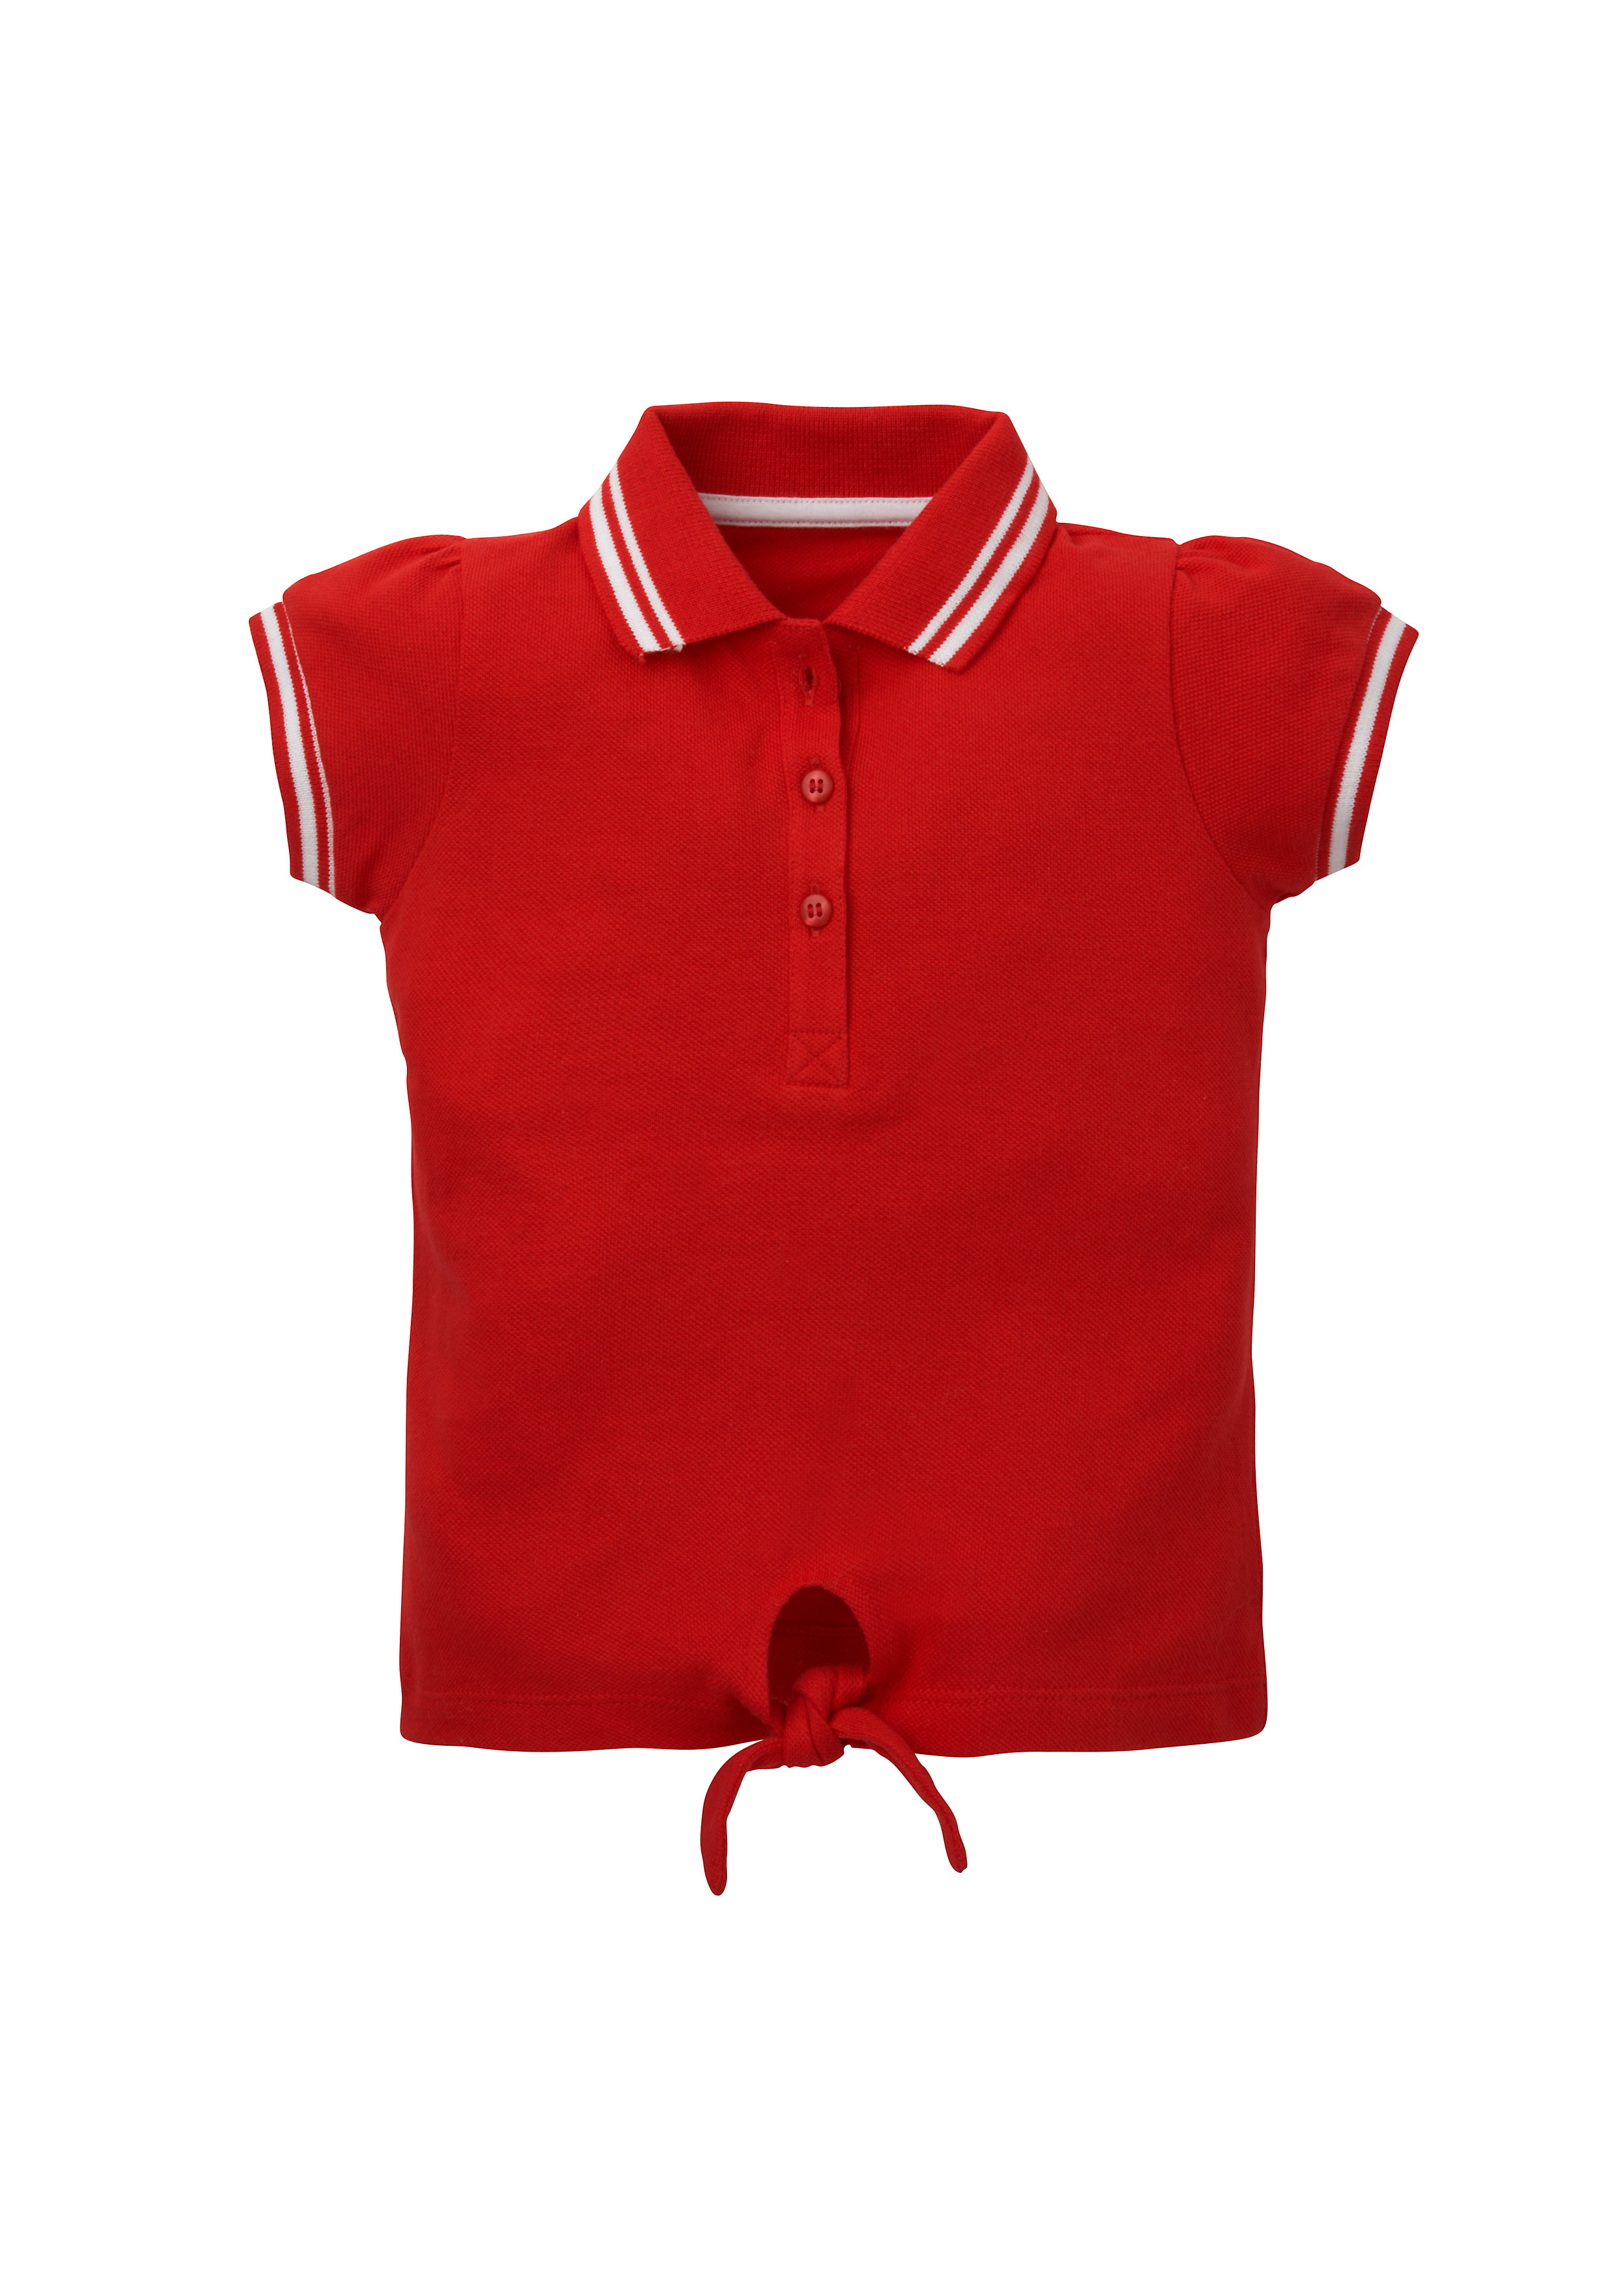 Mothercare   Girls Half Sleeves Polo T-Shirt Tie Waist - Red